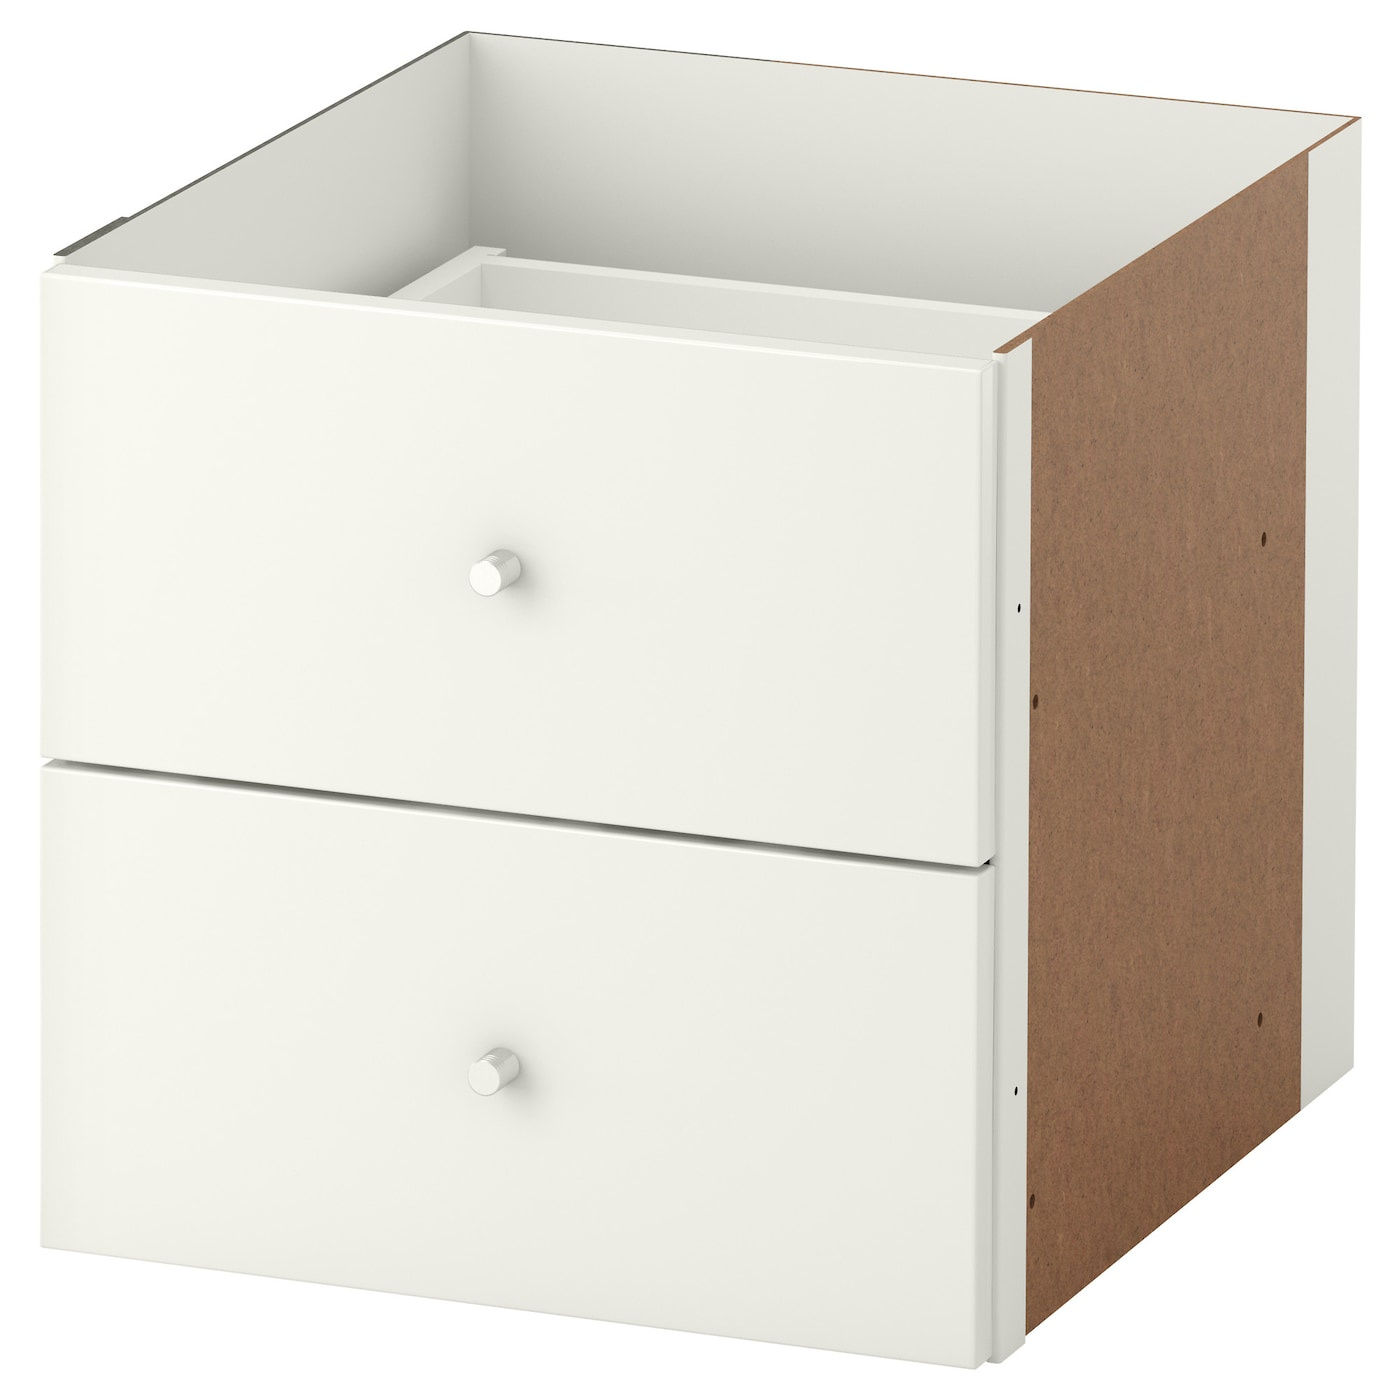 kallax insert with 2 drawers high gloss white 33x33 cm ikea. Black Bedroom Furniture Sets. Home Design Ideas